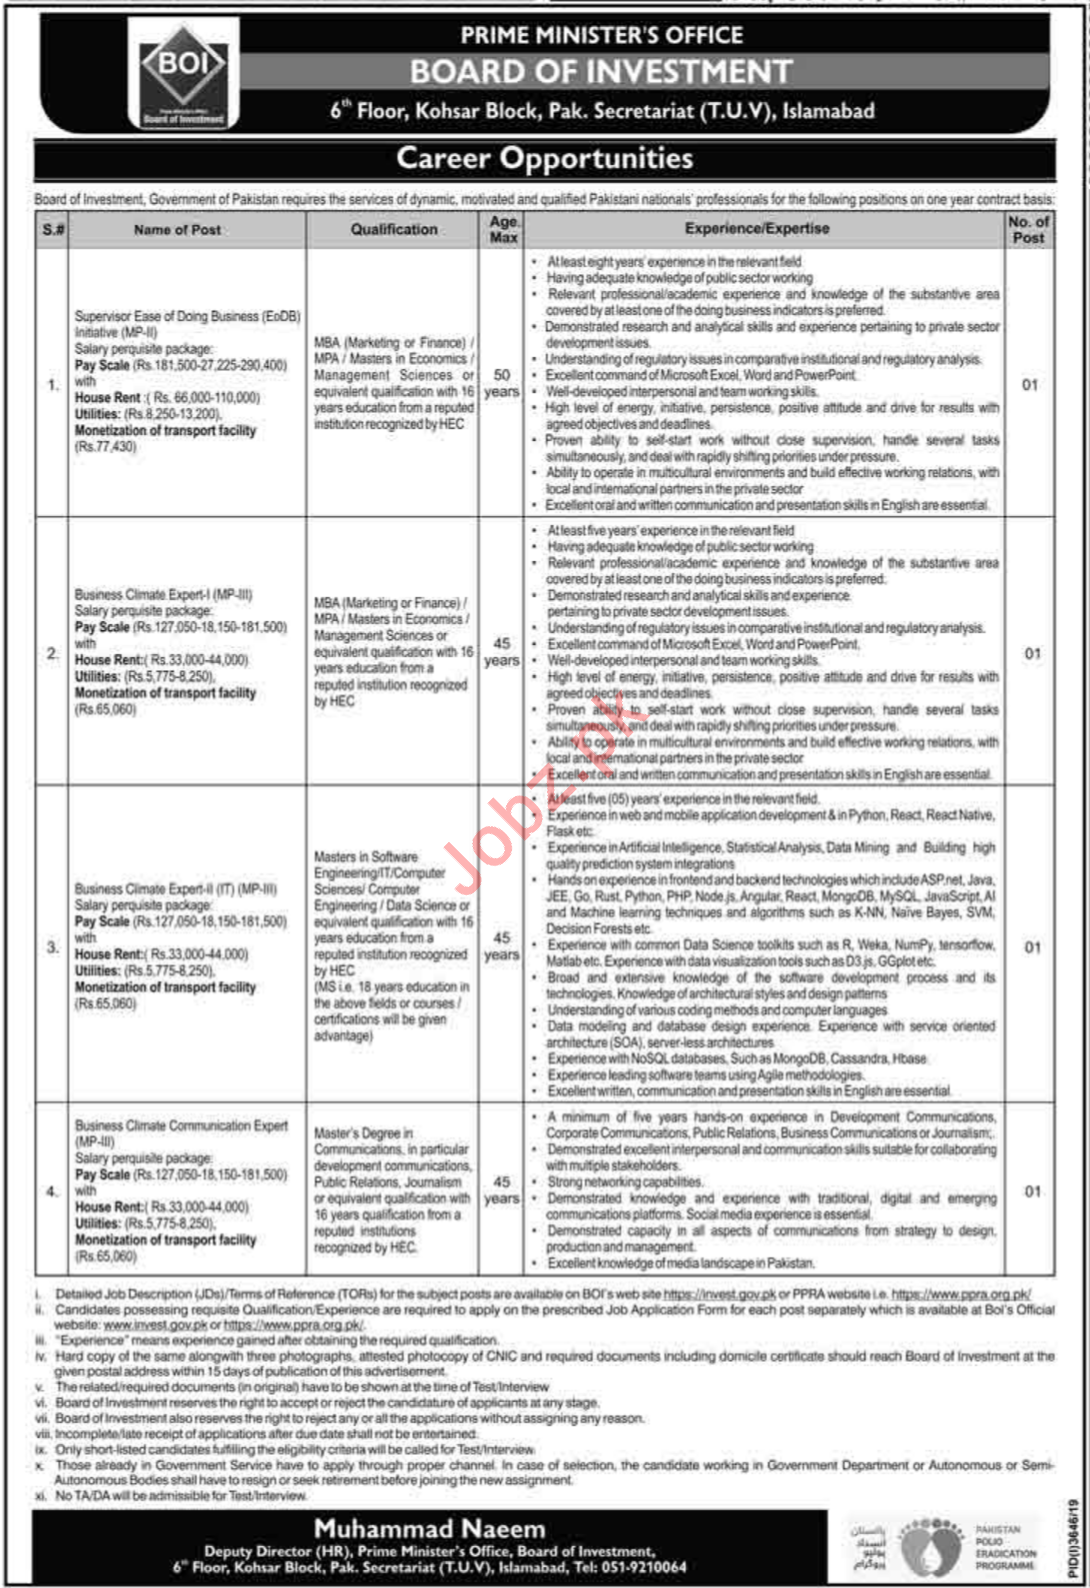 Board of Investment Jobs 2020 in Islamabad